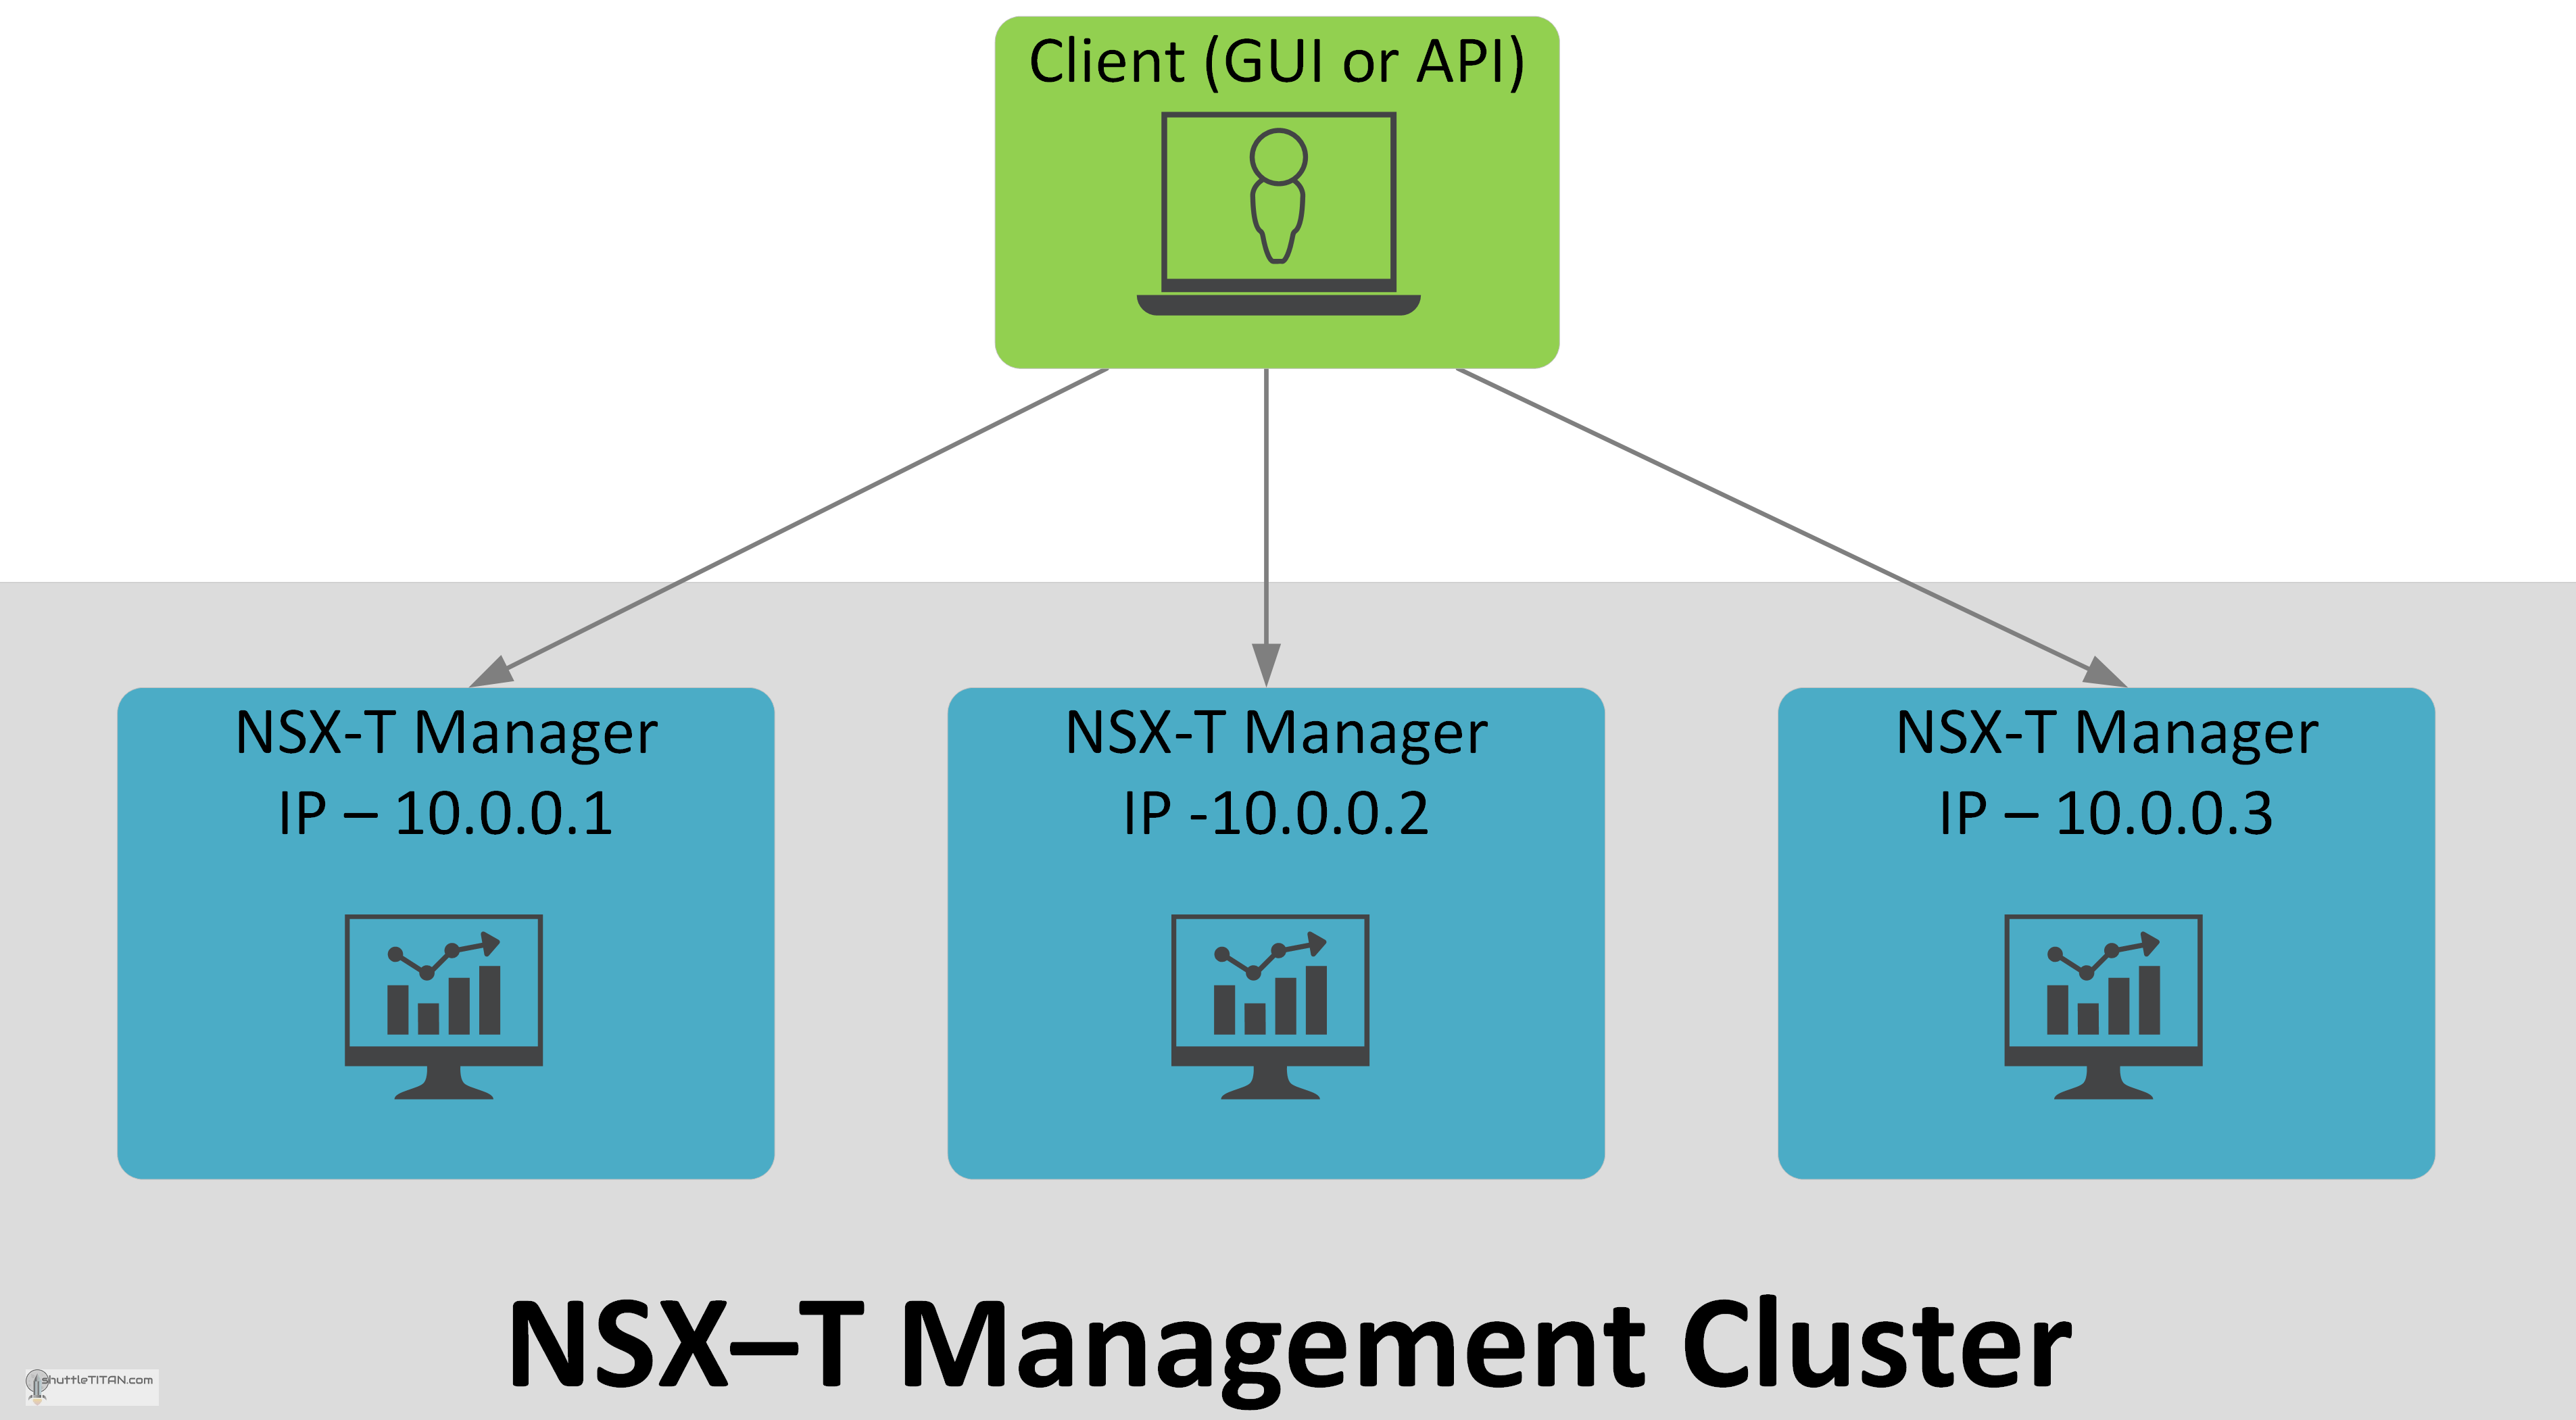 NSX-T Management Cluster Deployment: Part 1